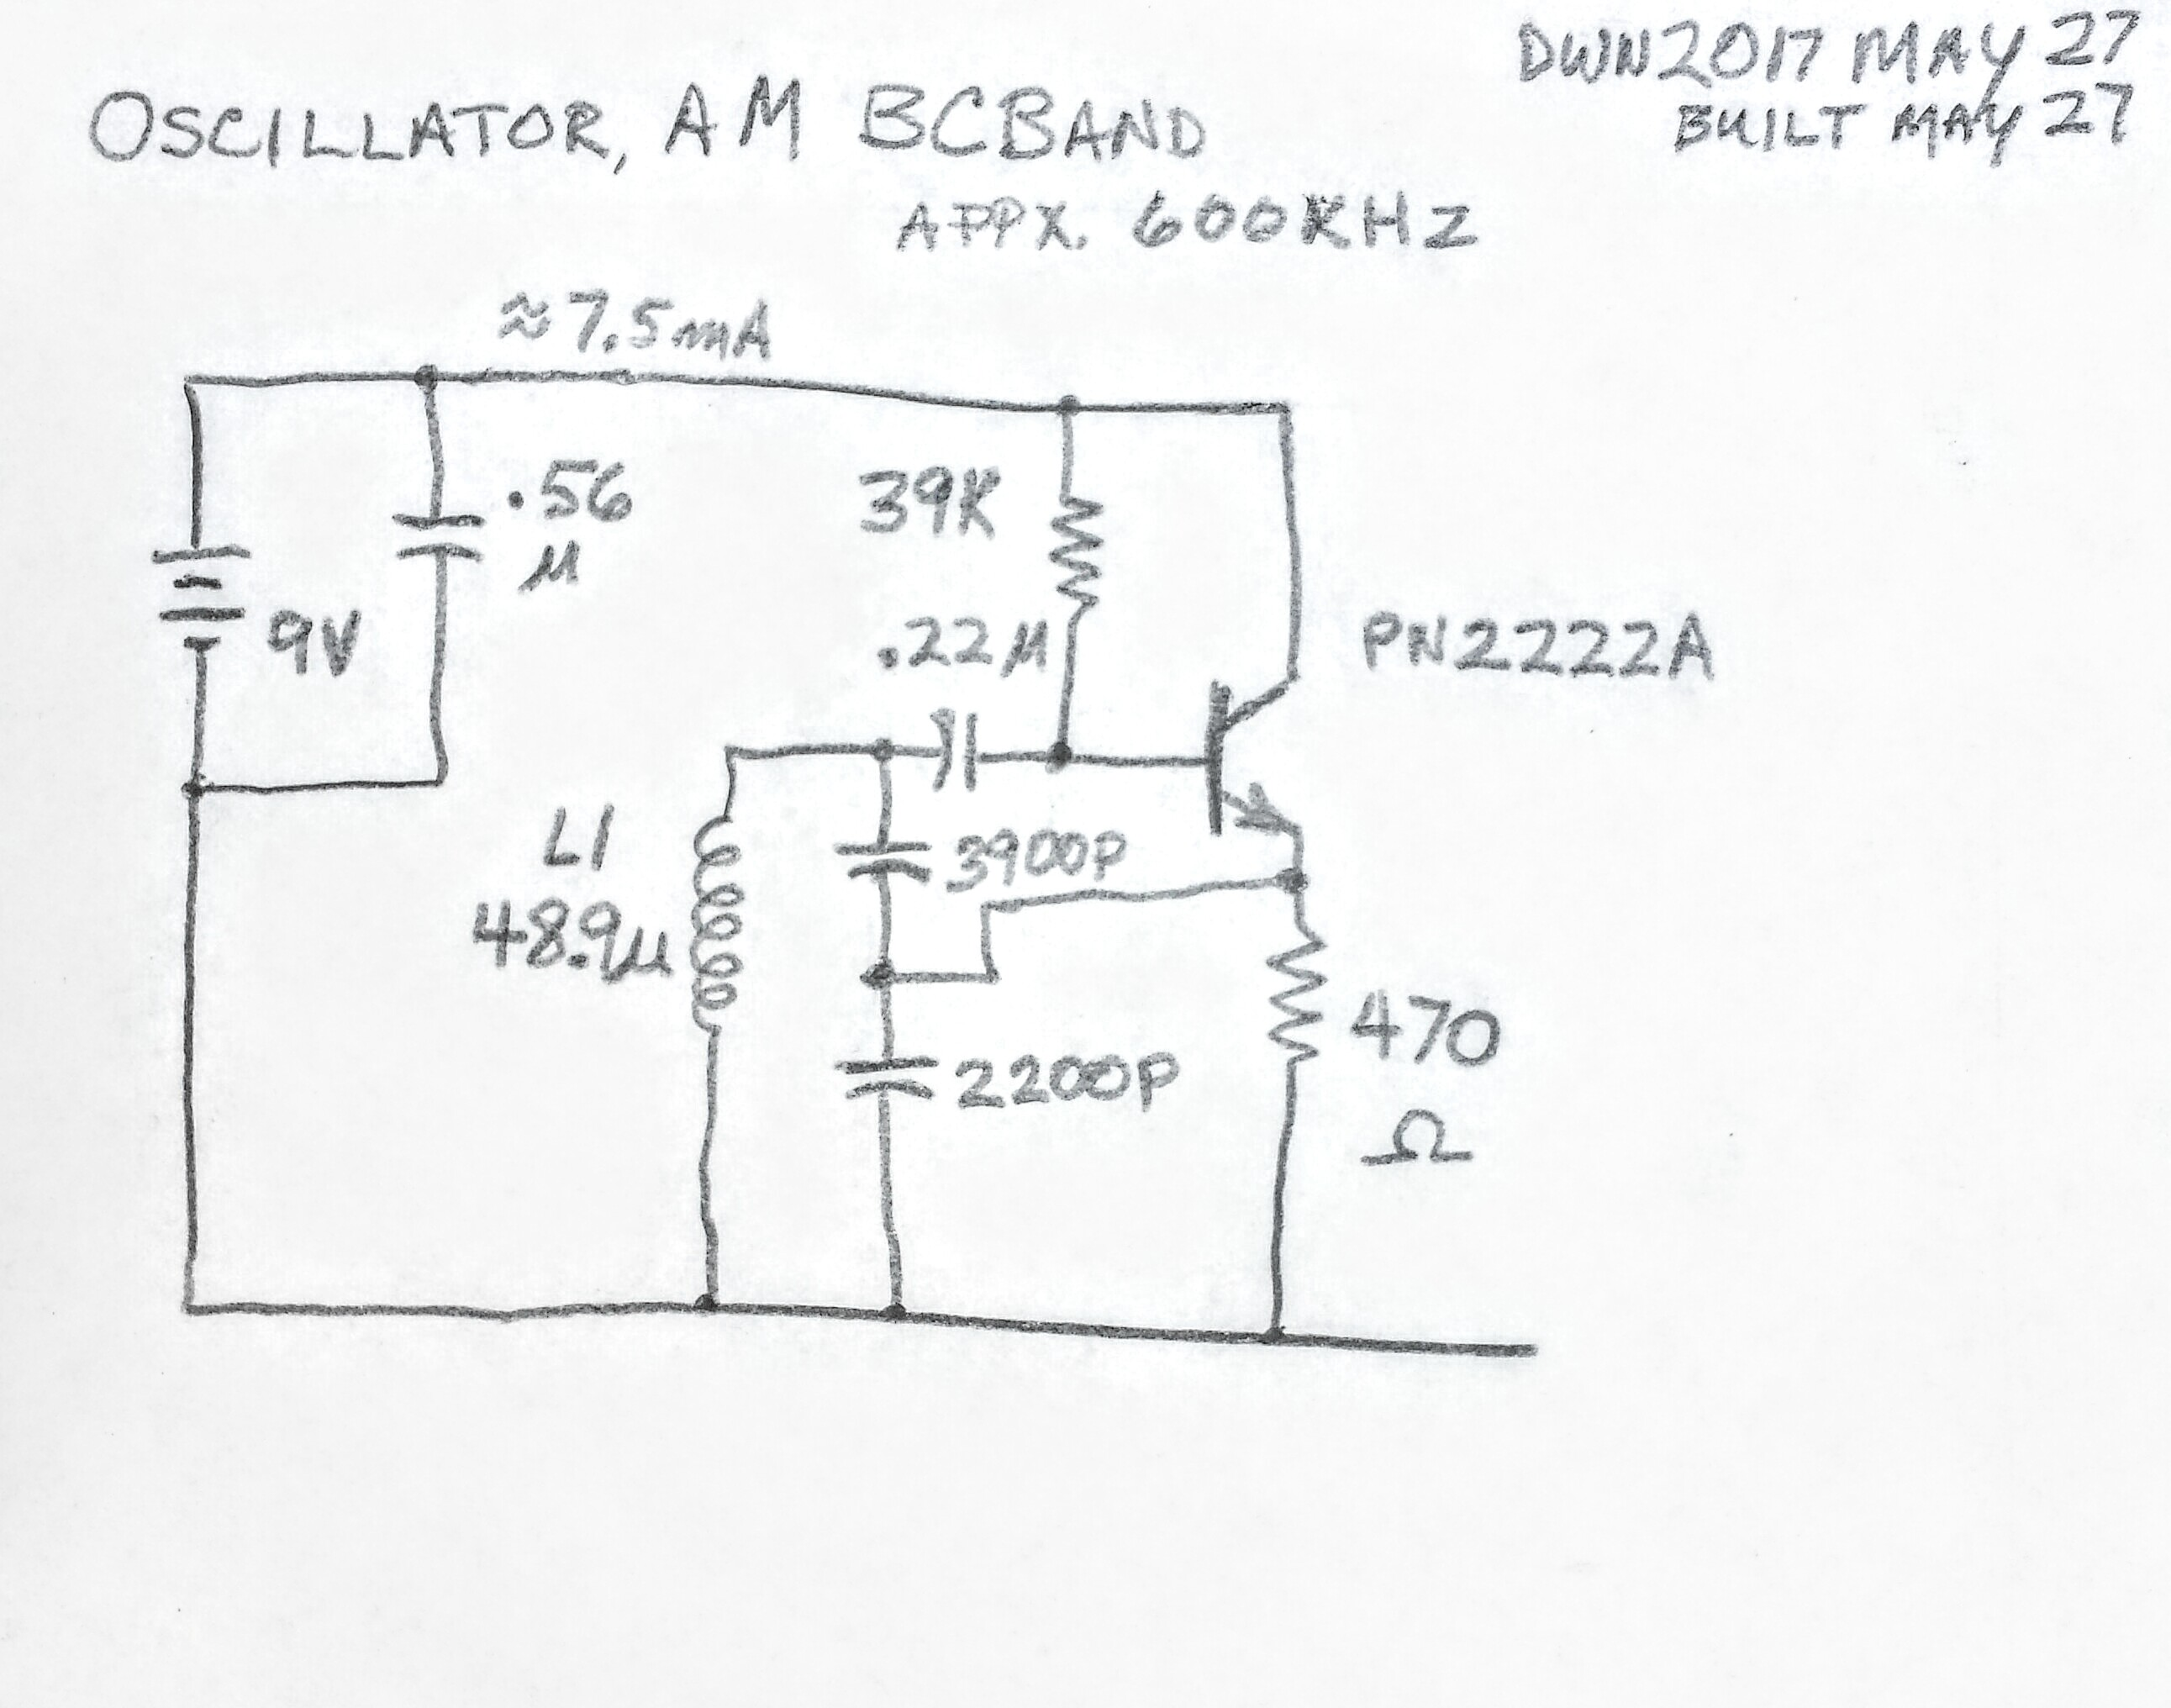 Wordpress Page 20 Electronics Stuff A Lot Highgainamplifier Amplifiercircuit Circuit Diagram Seekiccom I Used 39 Nf And 22 In Series Which Gives 1407 Pf This The 49 Uh Coil Resonate At About 600 Khz On Lower End Of Am Broadcast Band